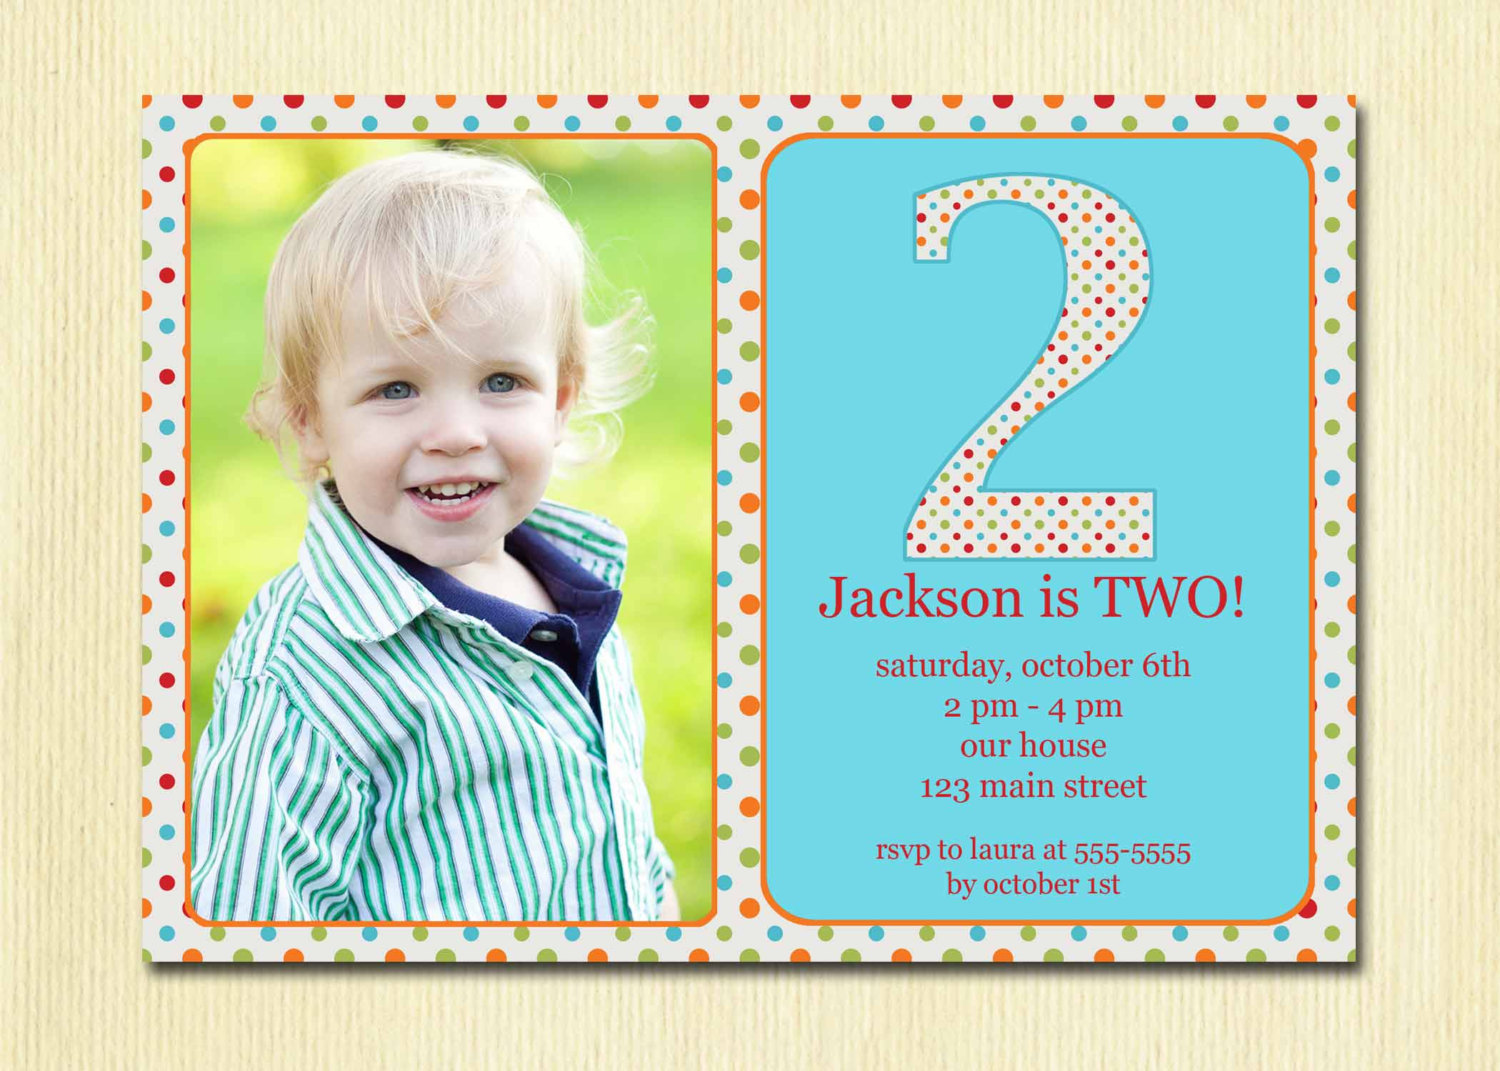 2nd birthday party invitation wording samples ; birthday__licious_2nd_birthday_invitations_wording_high_resolution_1